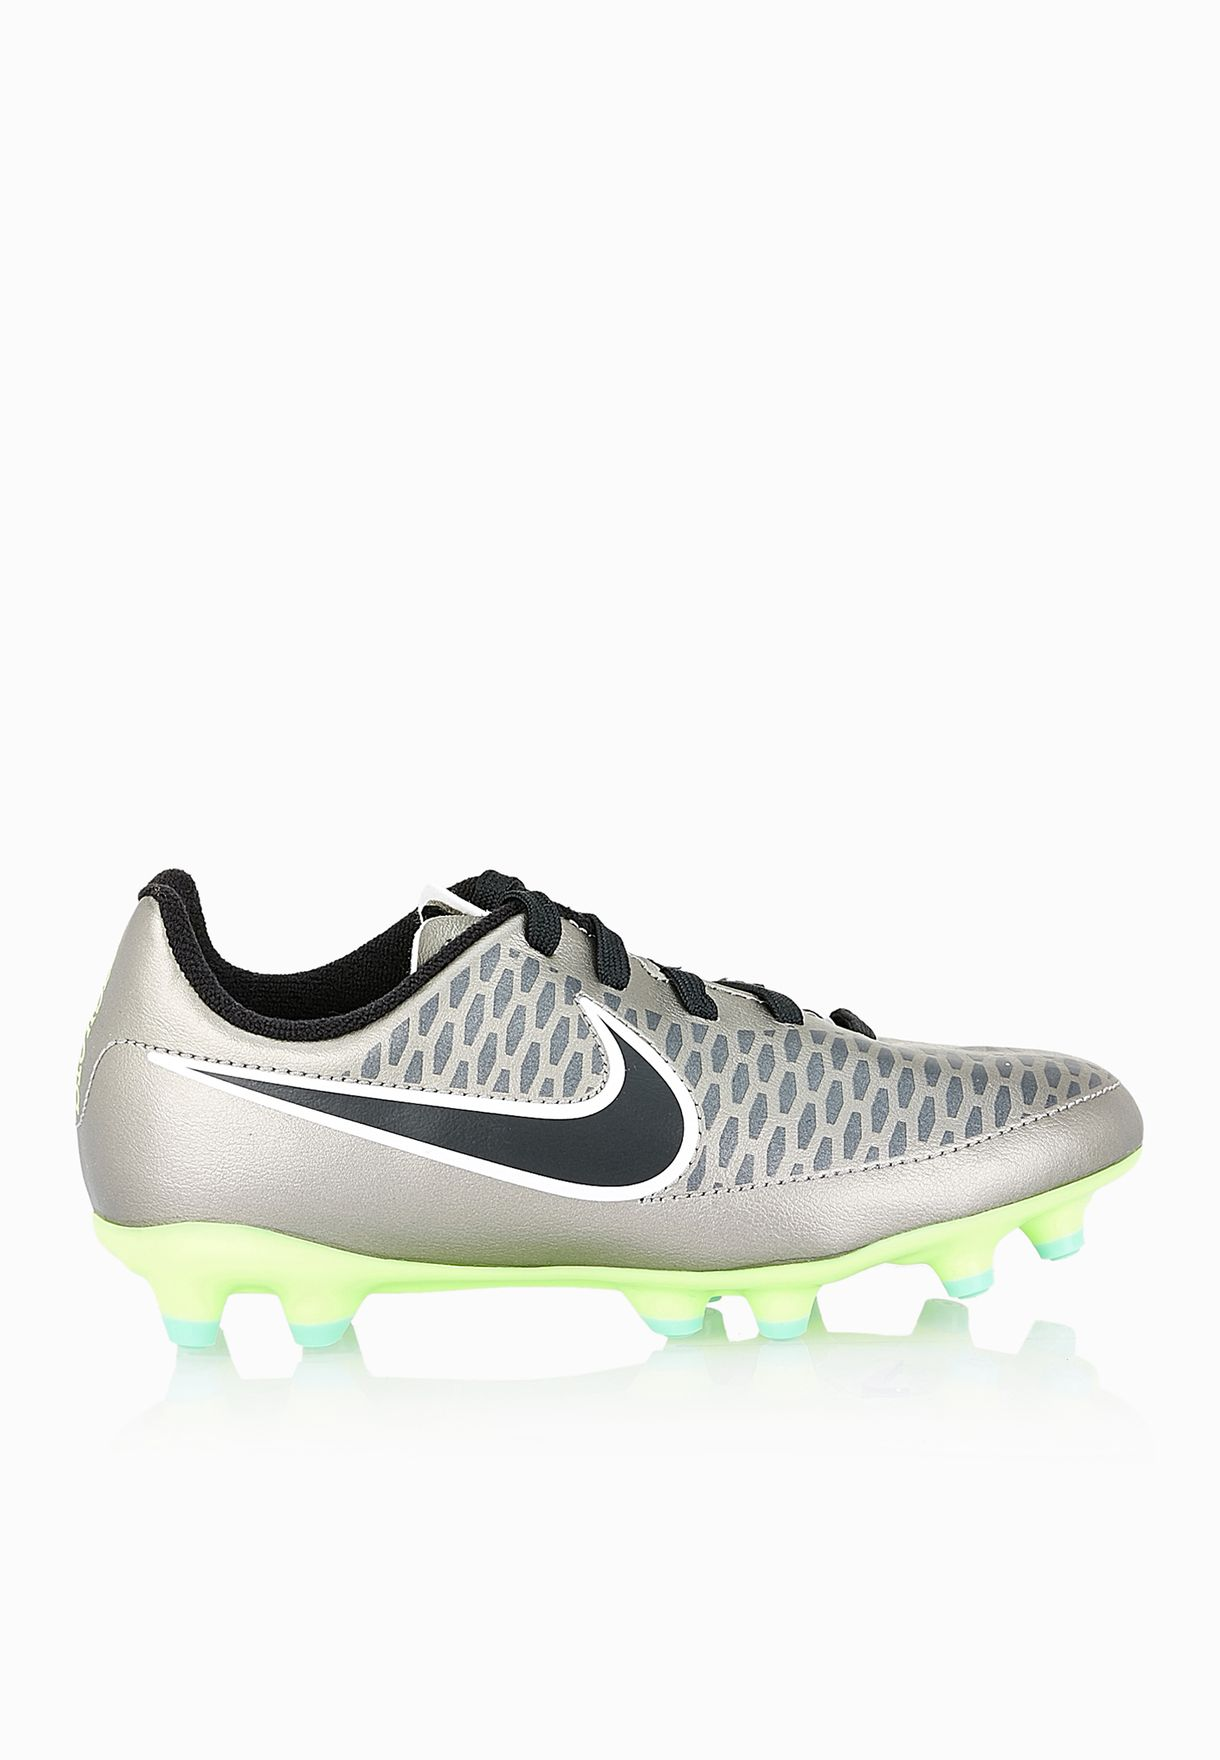 Low Price Magista Obra Green Football Shoes online